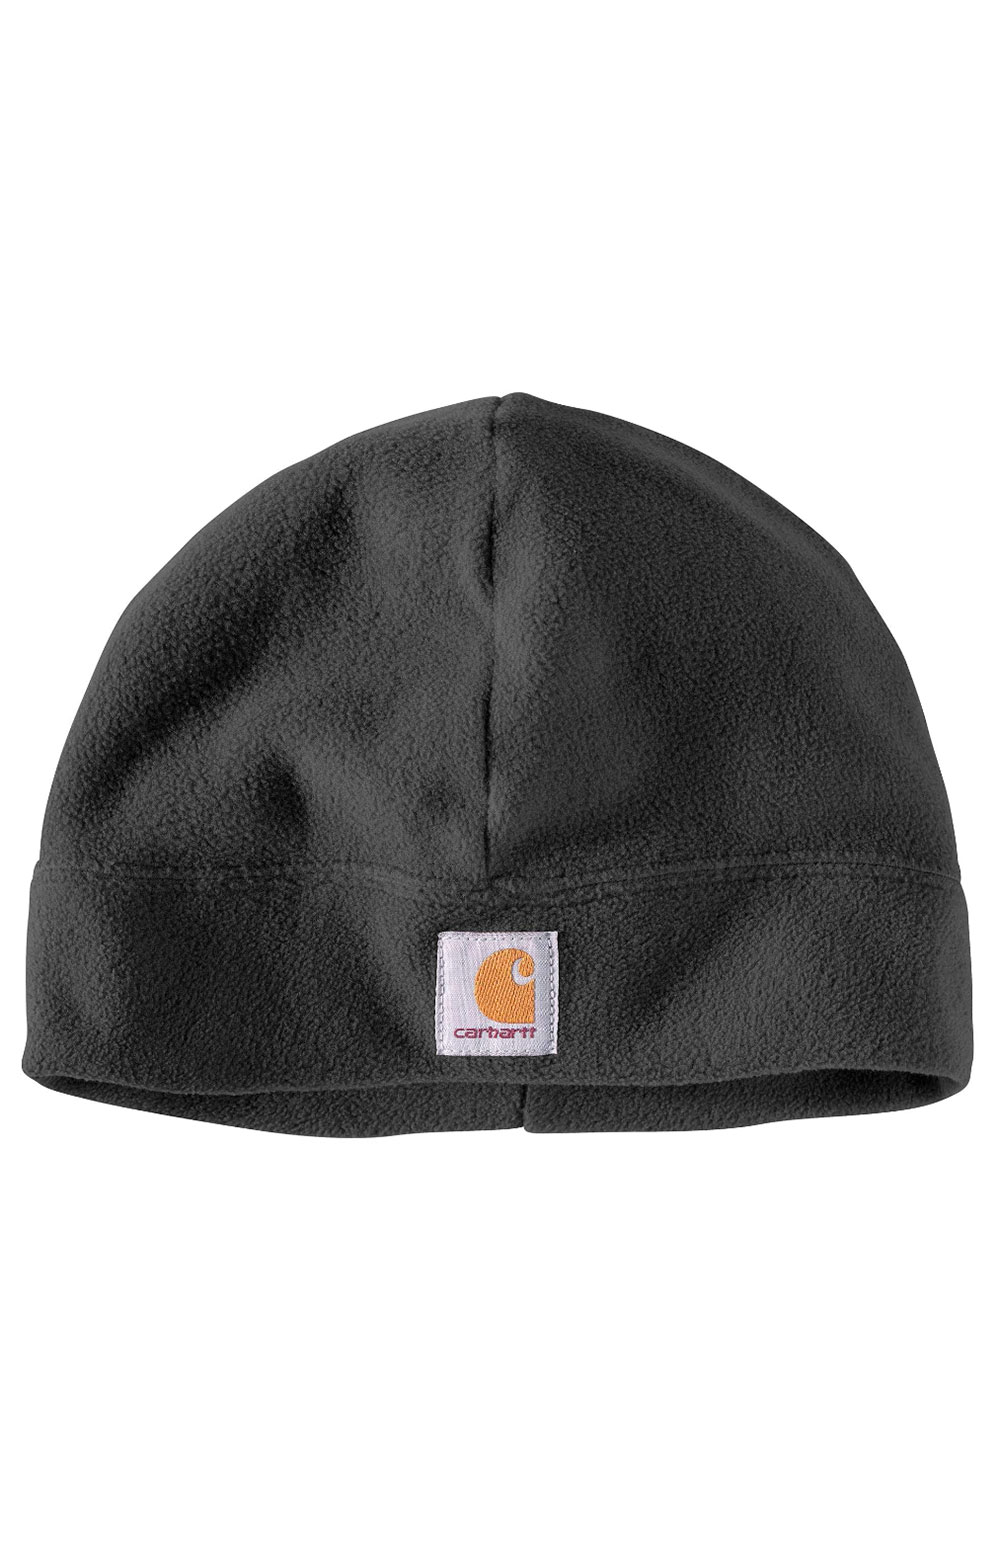 (A207) Fleece Hat - Black